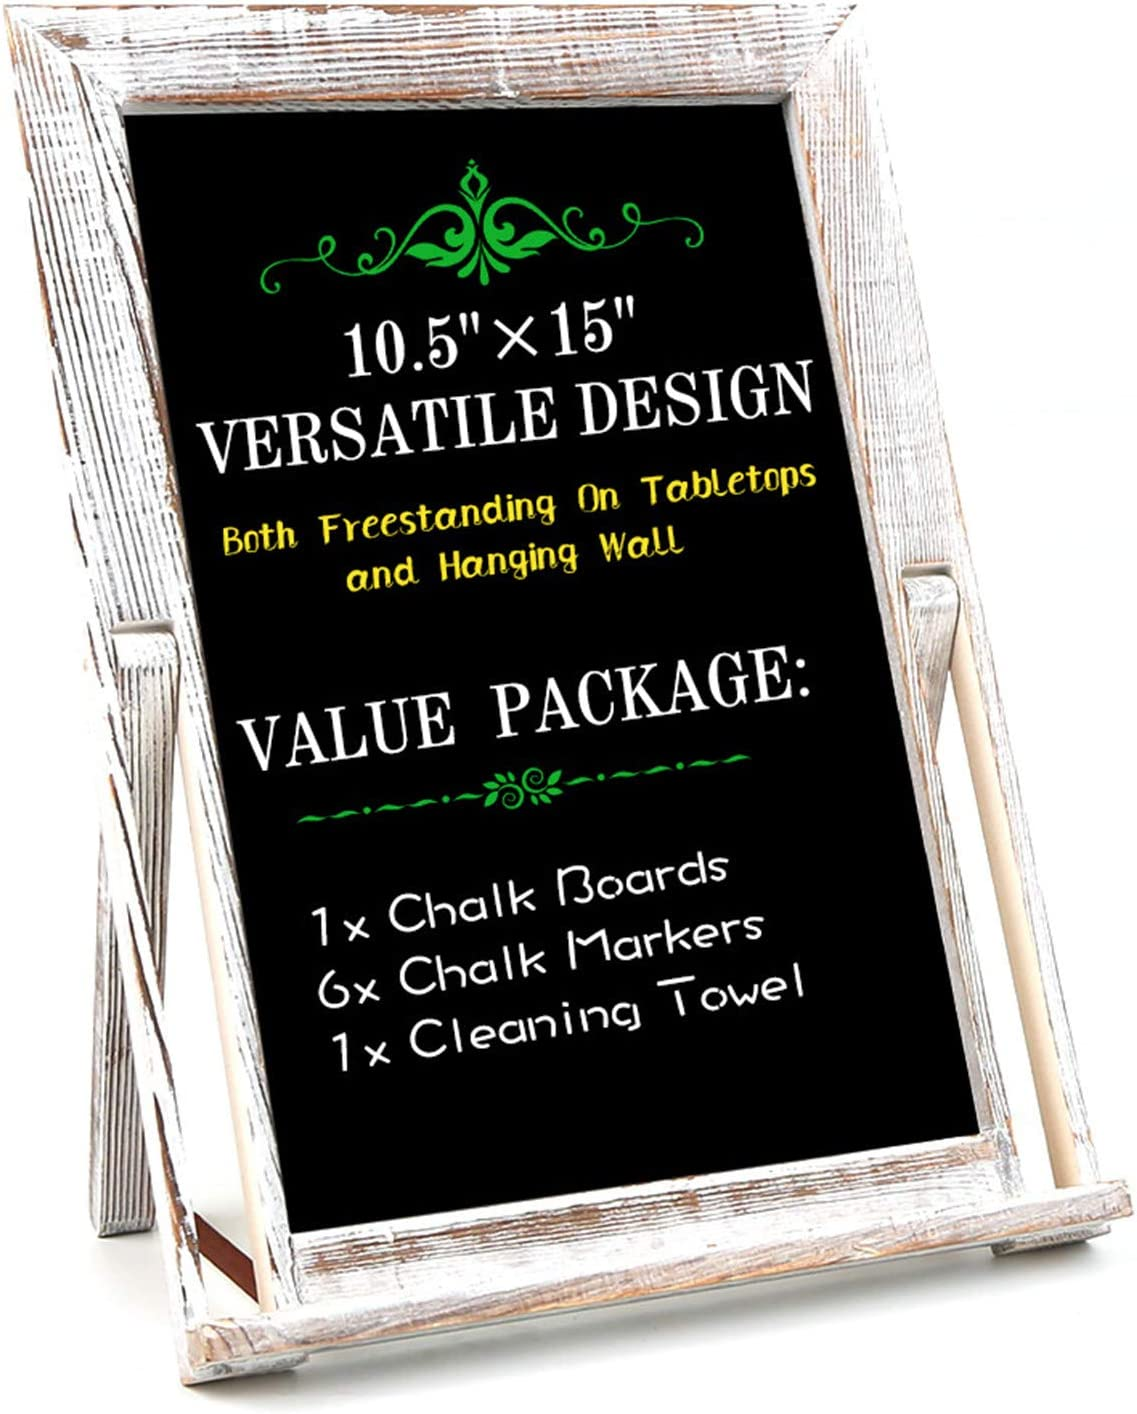 BECTSBEFF 15 X 10.5 Wood Framed Tabletop Chalkboard Sign, Small Rustic Whitewash Wall Hanging Magnetic Chalkboard, Kitchen Menu Display Chalk Board Signs, Mini Countertop Memo Board for Wedding Décor